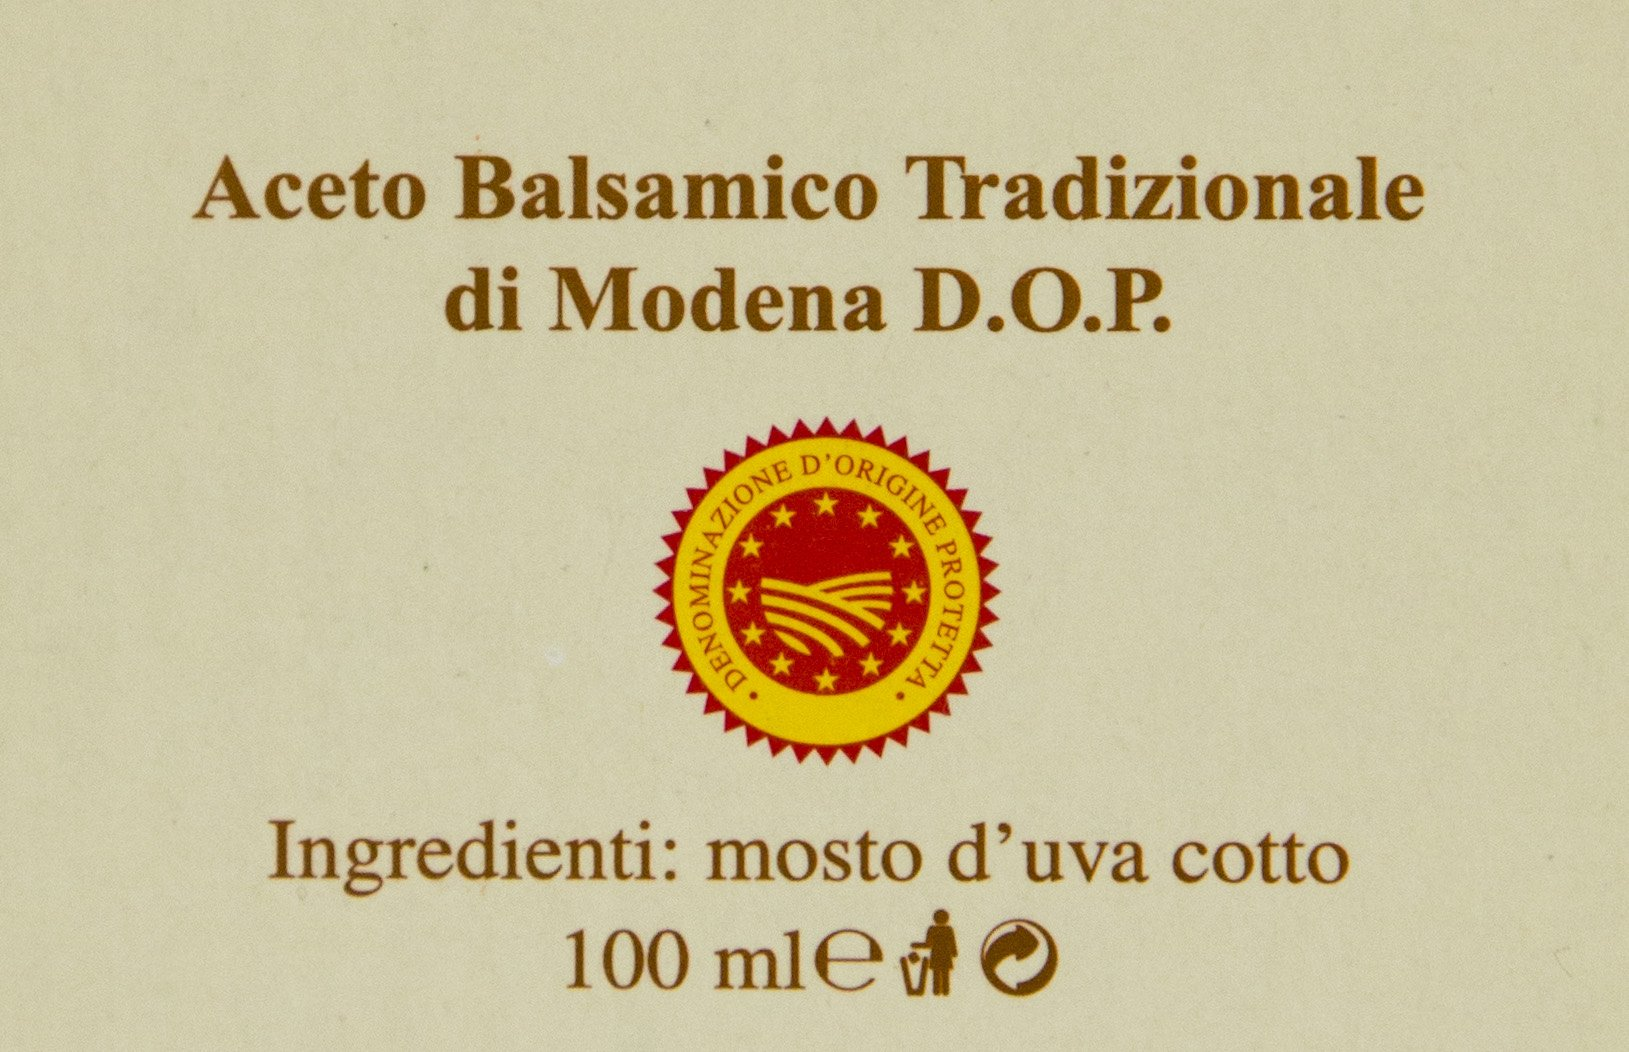 Aceto Balsamico Tradizionale di Modena DOP Affinato from The Consortium of Traditional Balsamic Vinegar Producers in Modena. Certified 12 Years old. On Sale now! by The Balsamic Guy (Image #7)